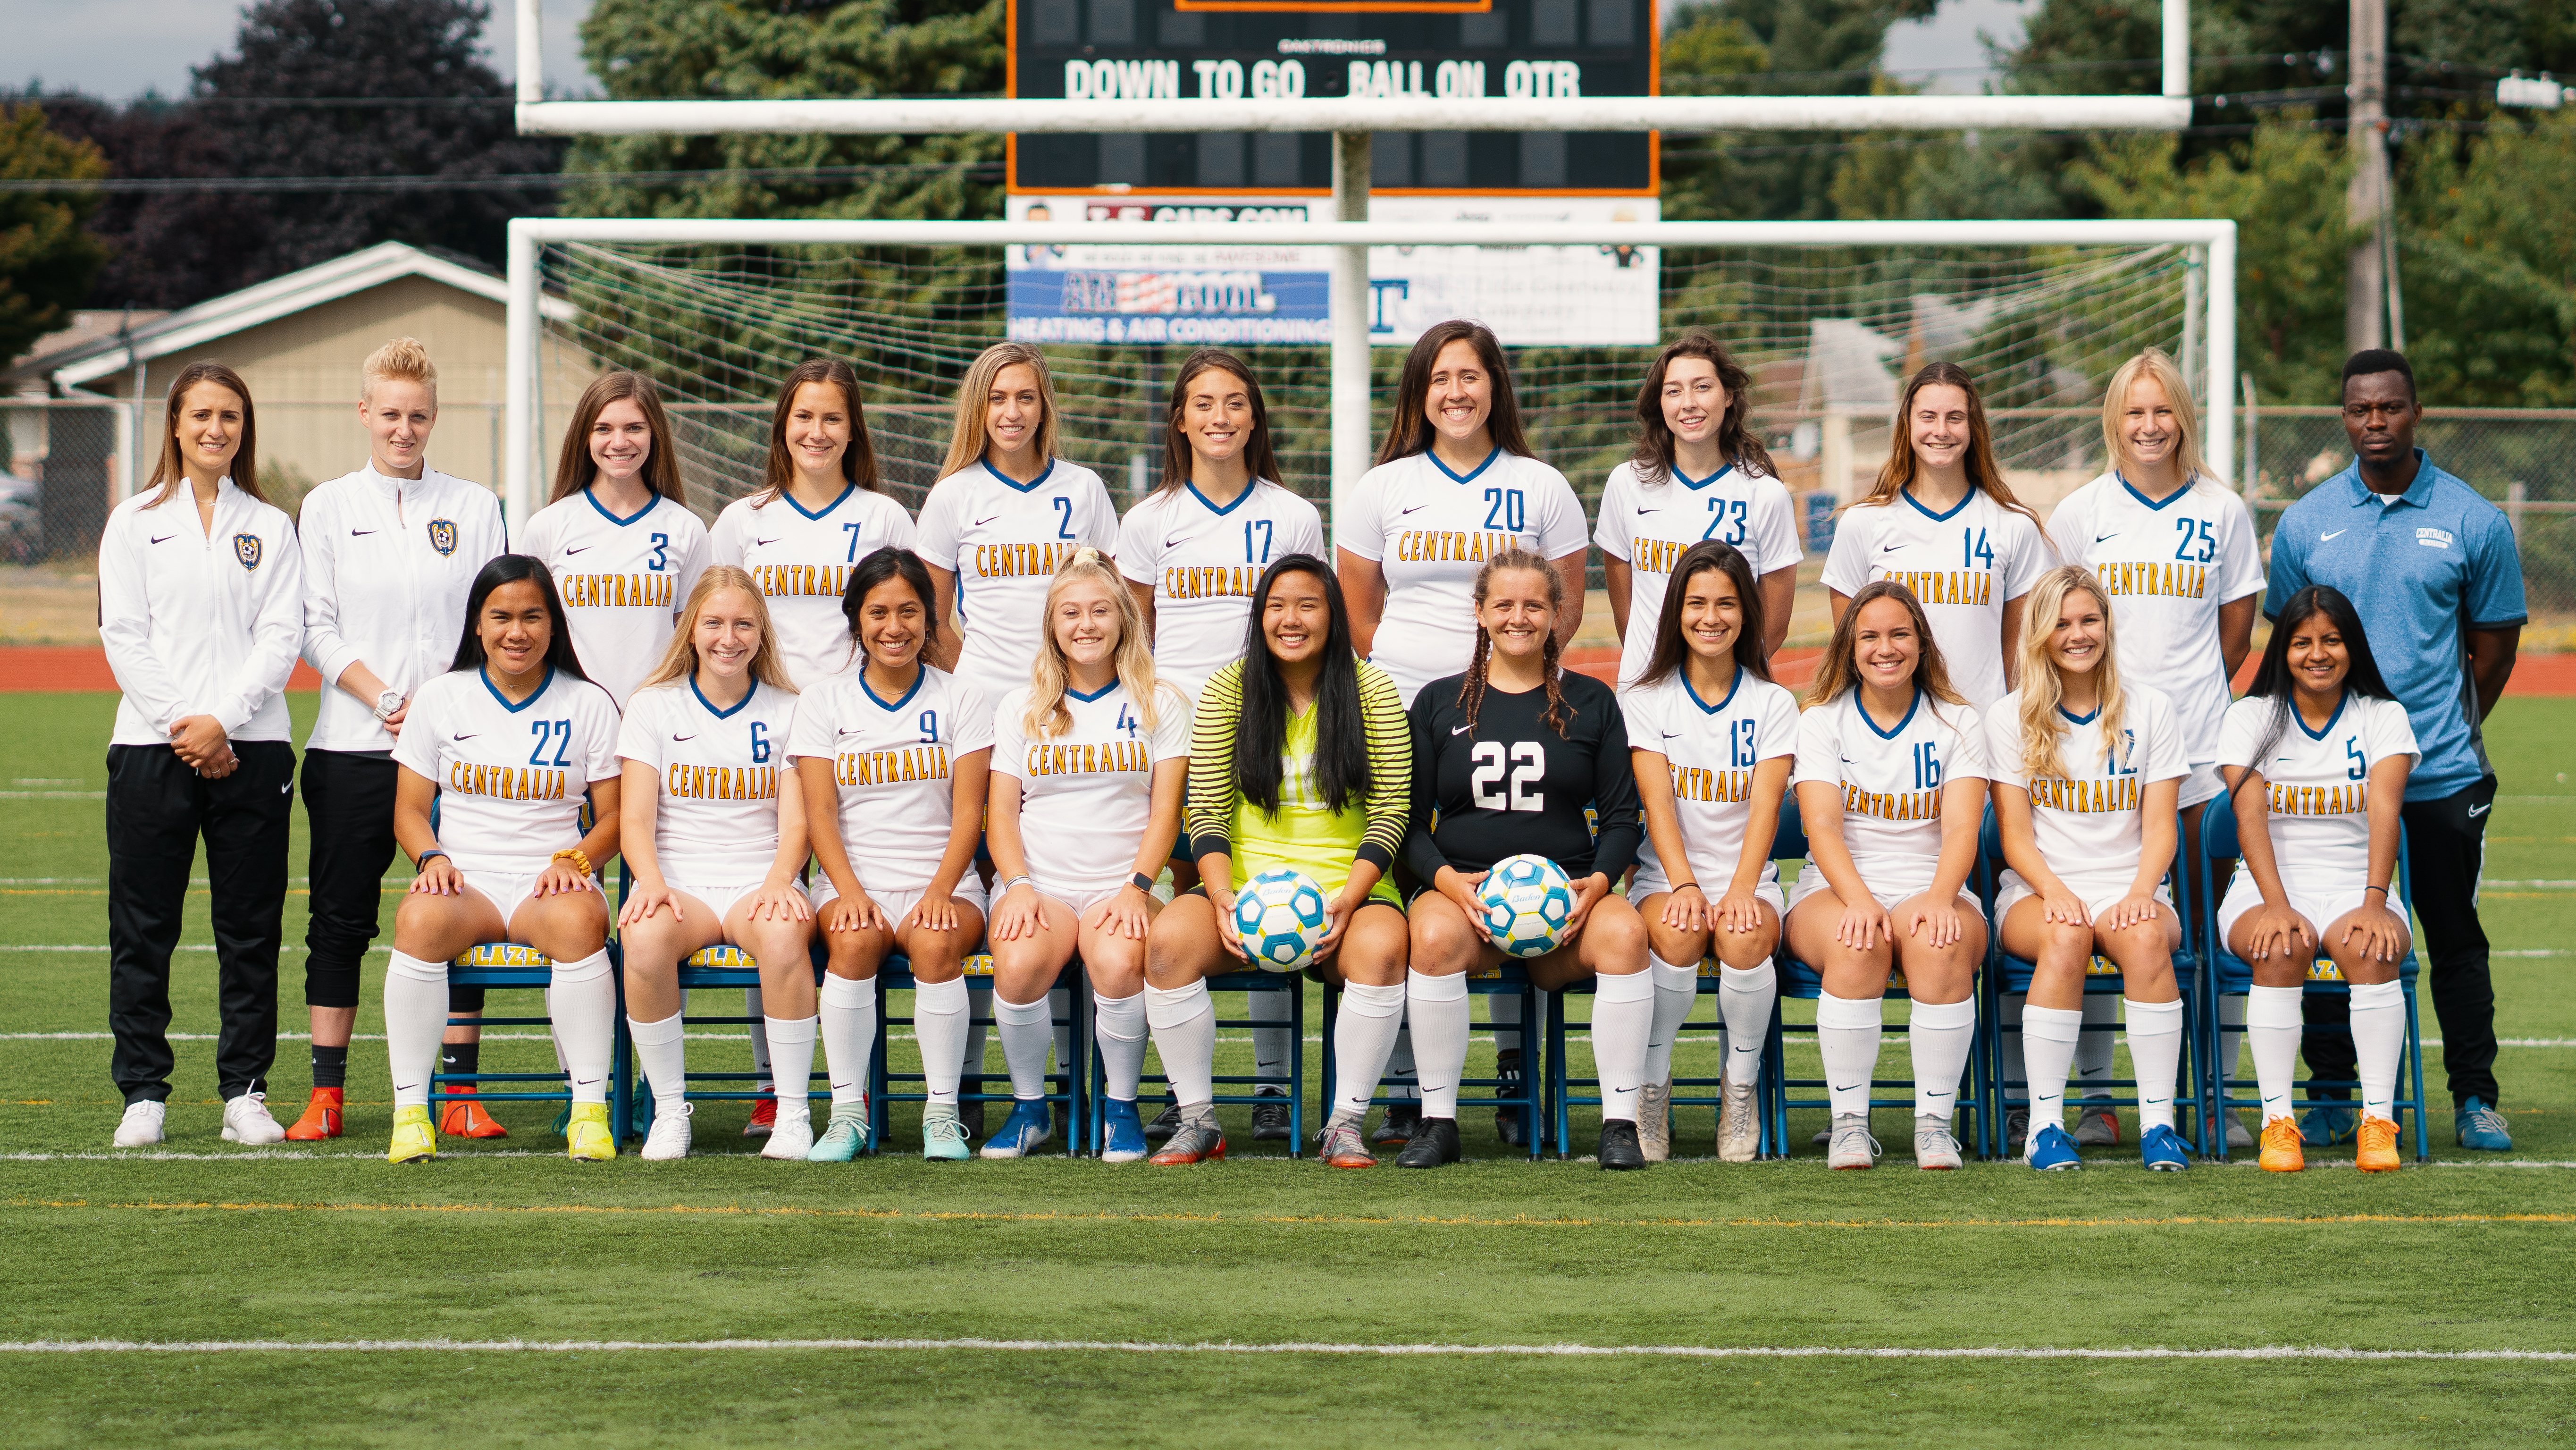 2019 Women's Soccer Team